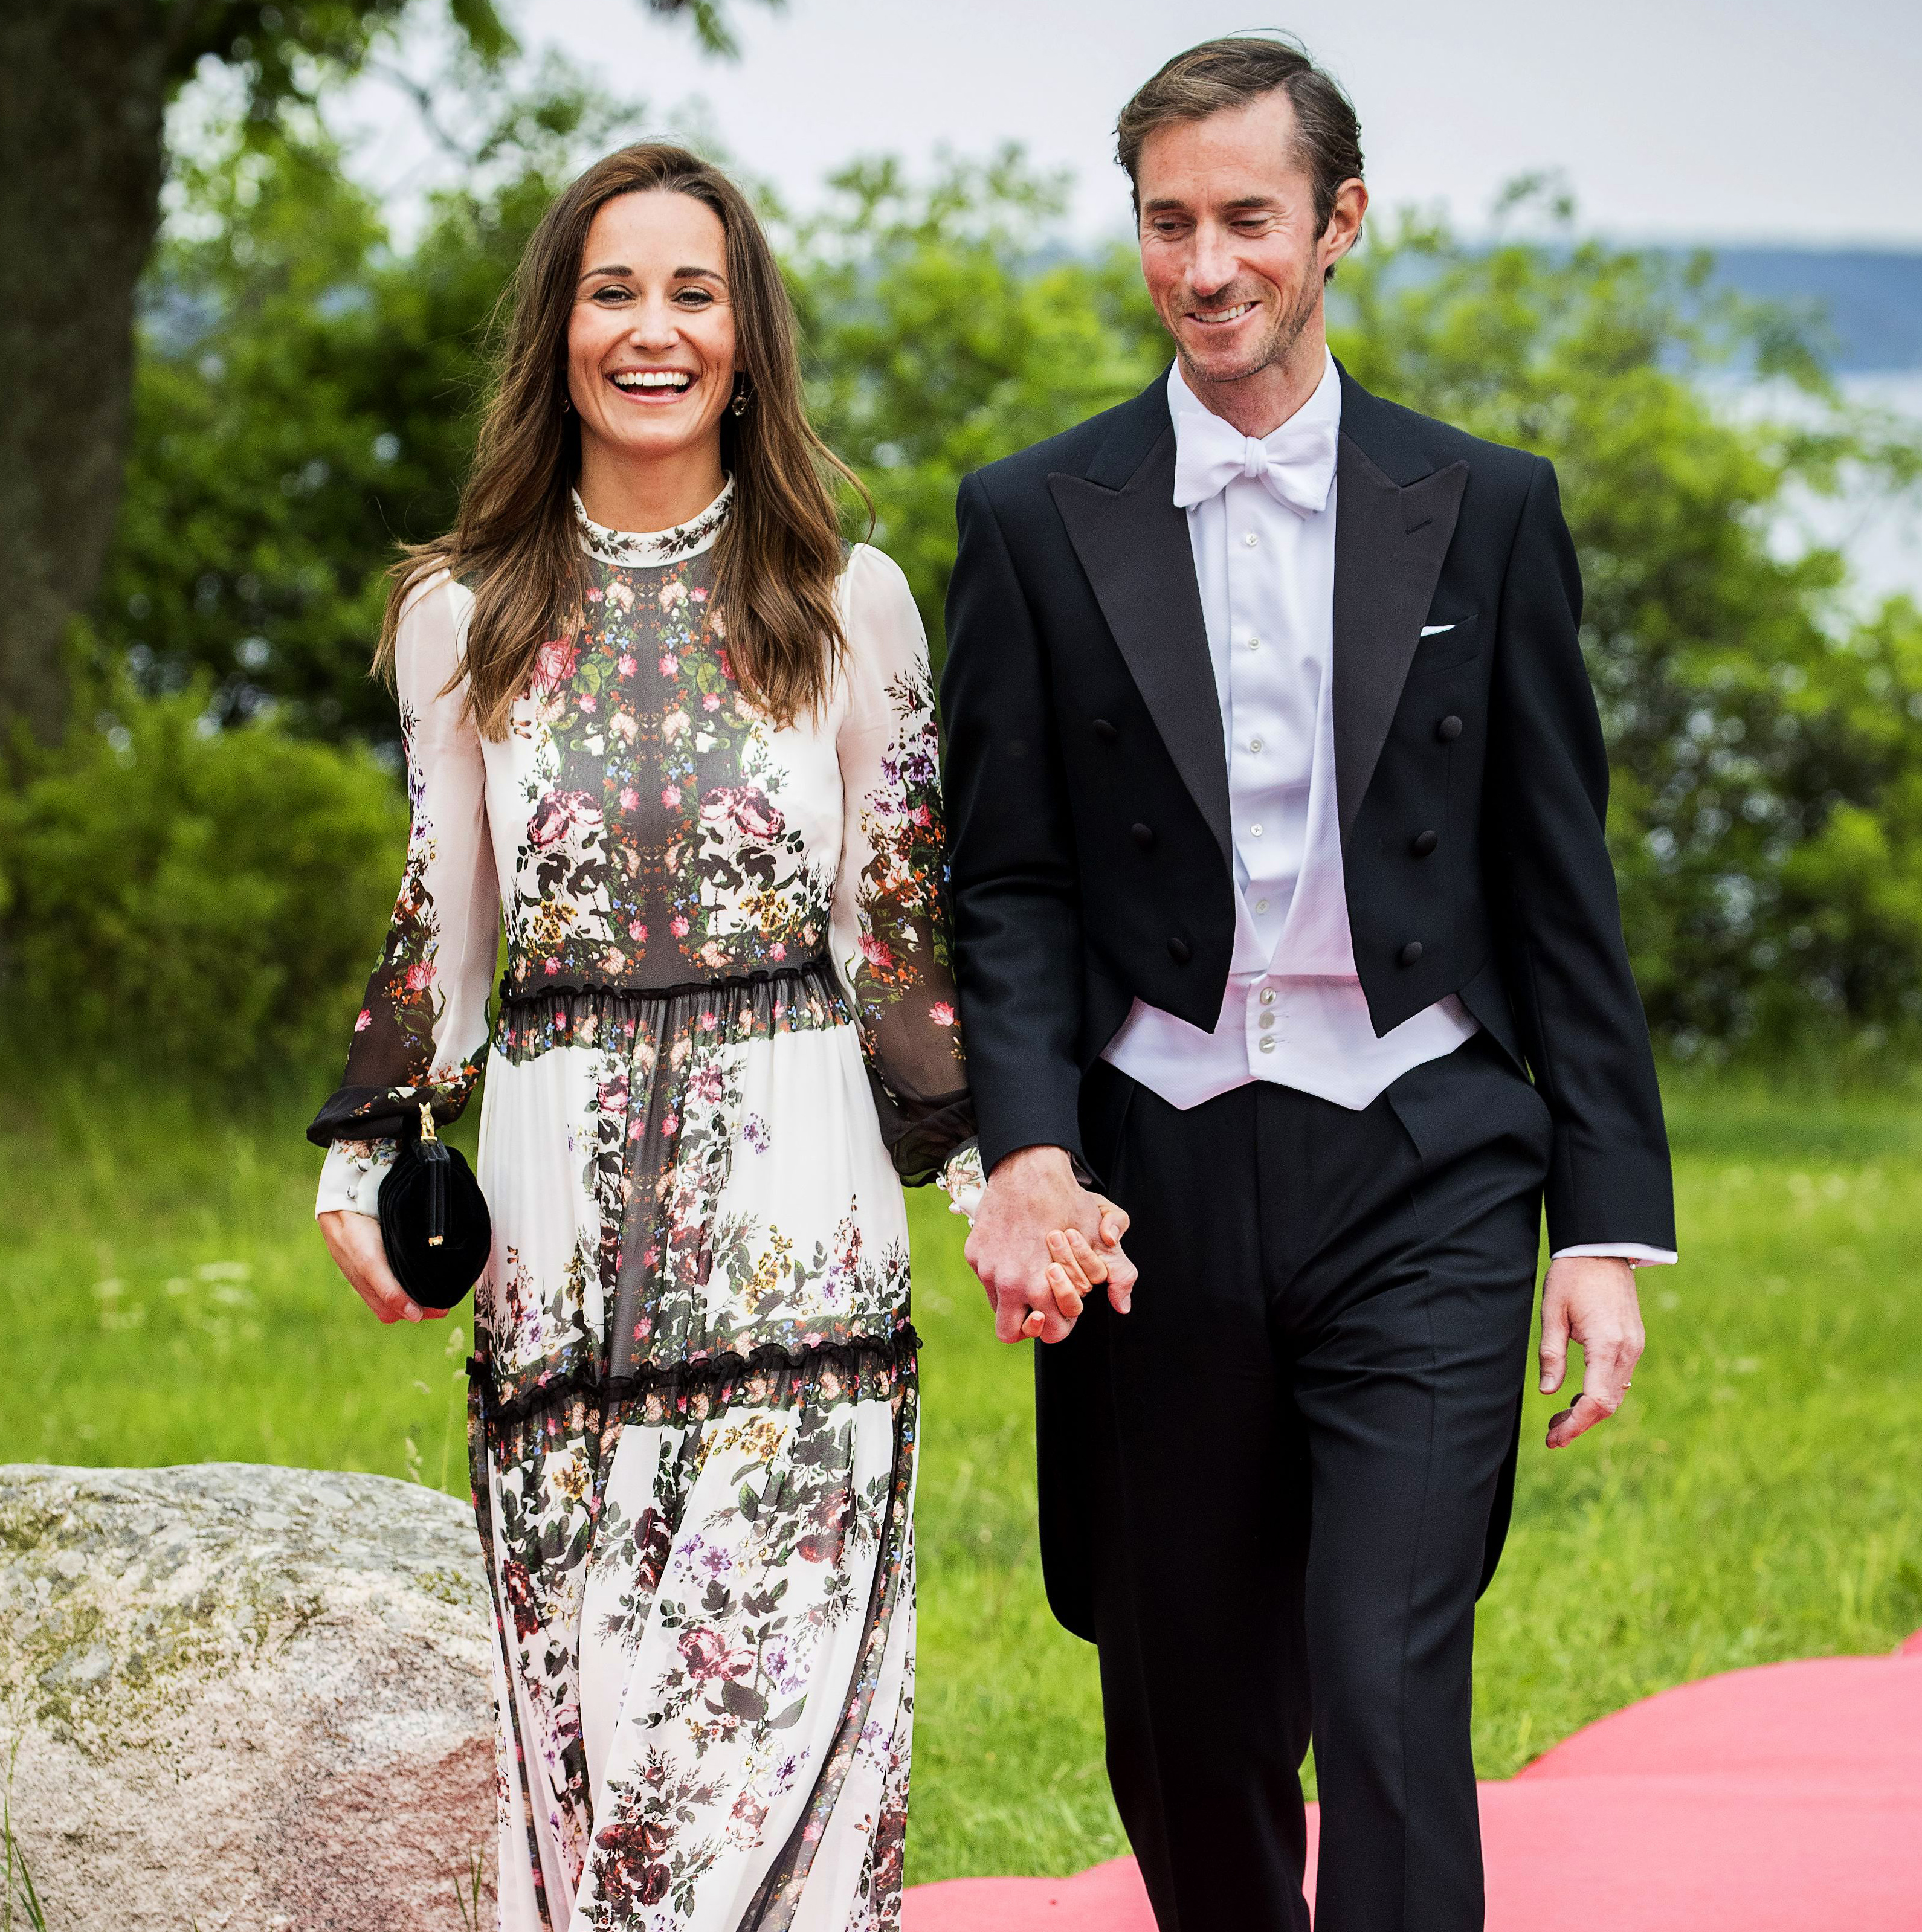 Pippa Middleton Gives Birth to 2nd Child With Husband James Matthews